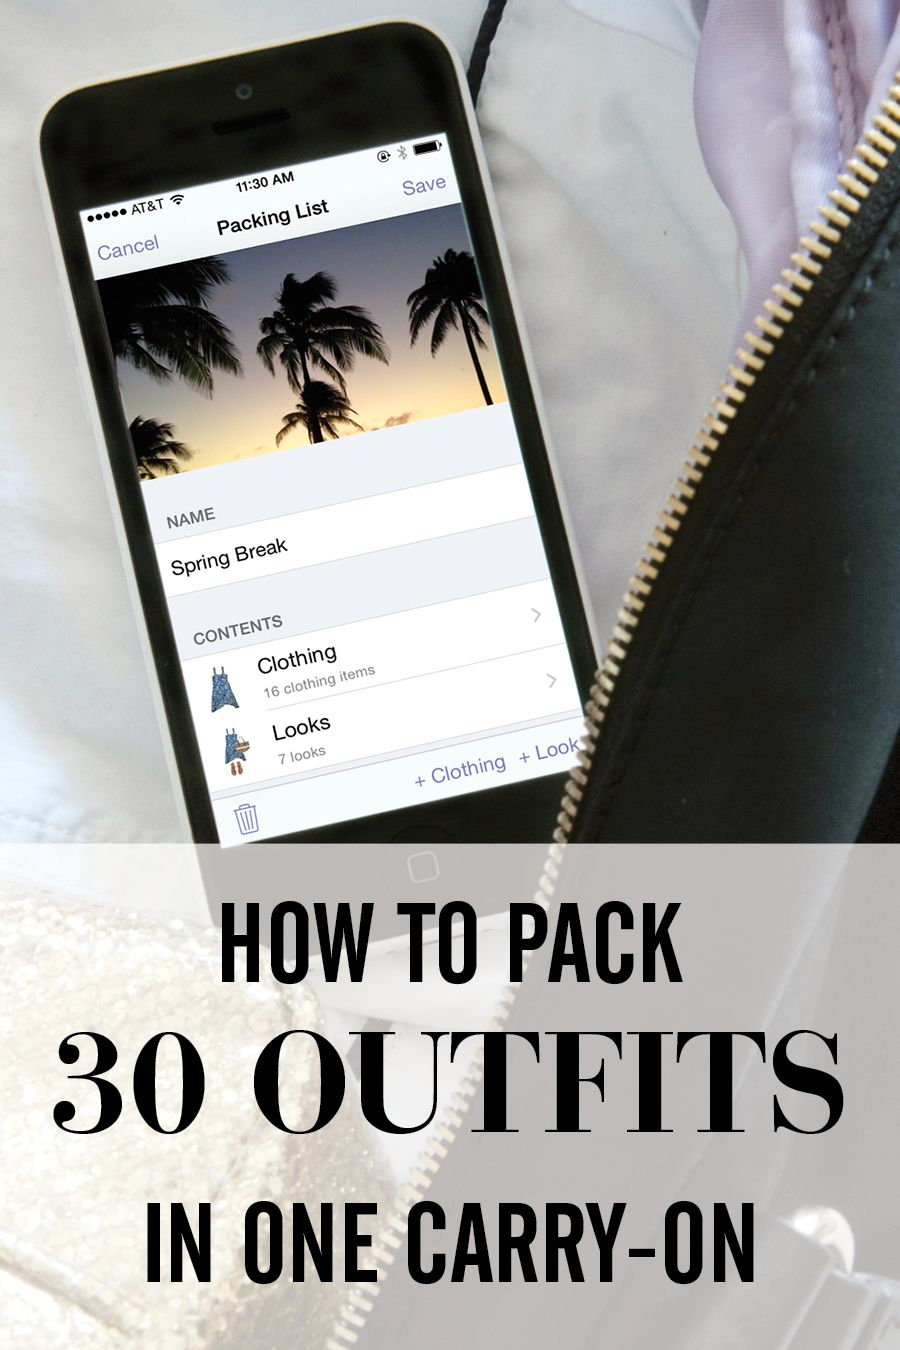 How I fit 30 outfits in my carry-on using Stylebook - see my packing checklist, folding techniques, outfits and travel tips.